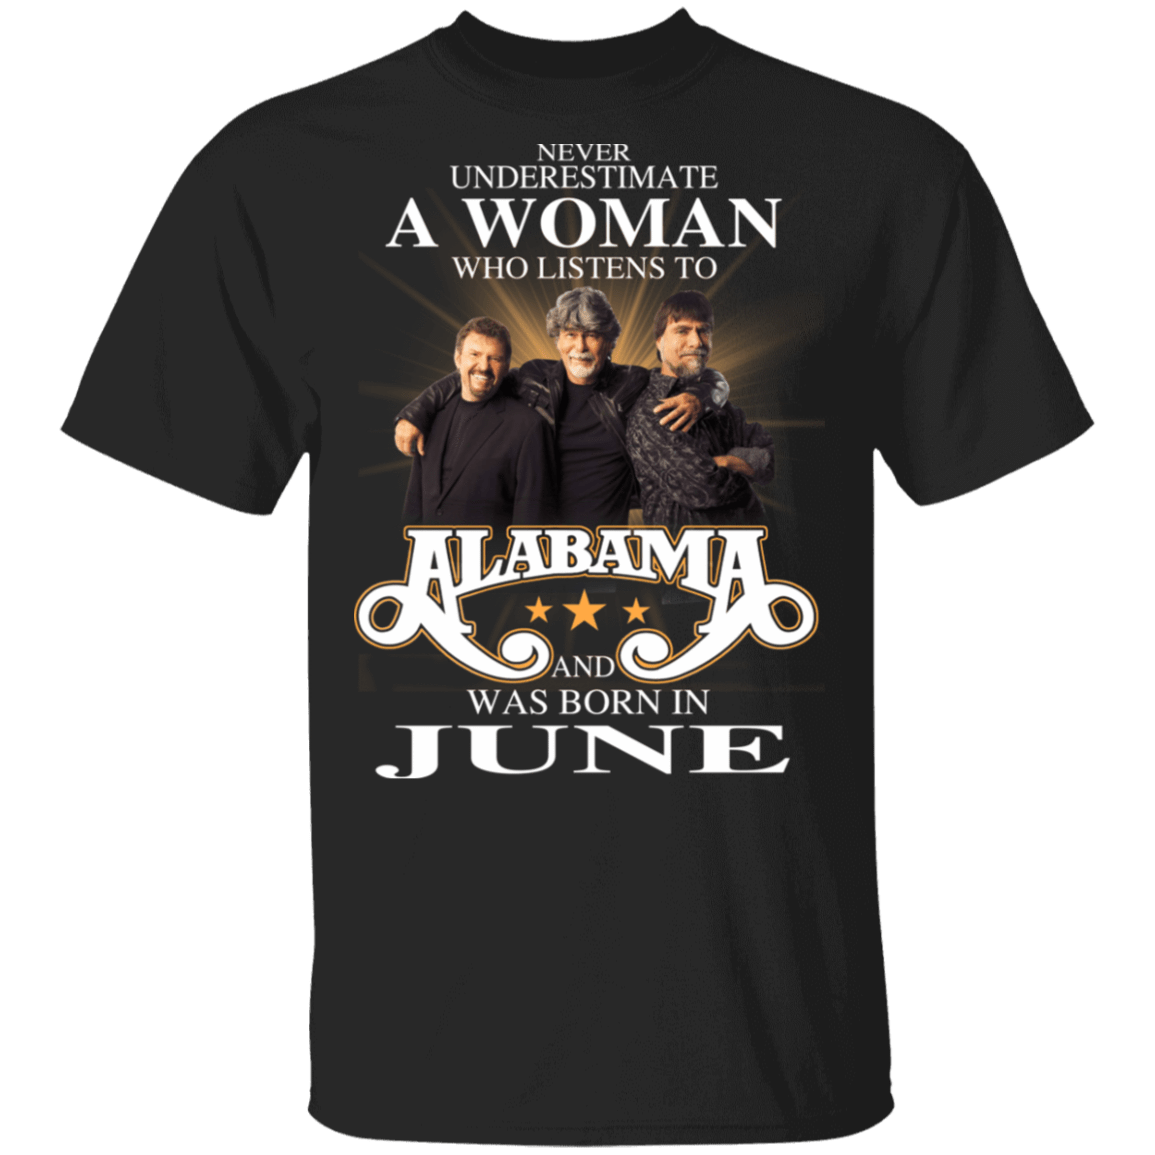 A Woman Who Listens To Alabama And Was Born In June T-Shirts, Hoodies, Tank 1049-9953-81138105-48144 - Tee Ript